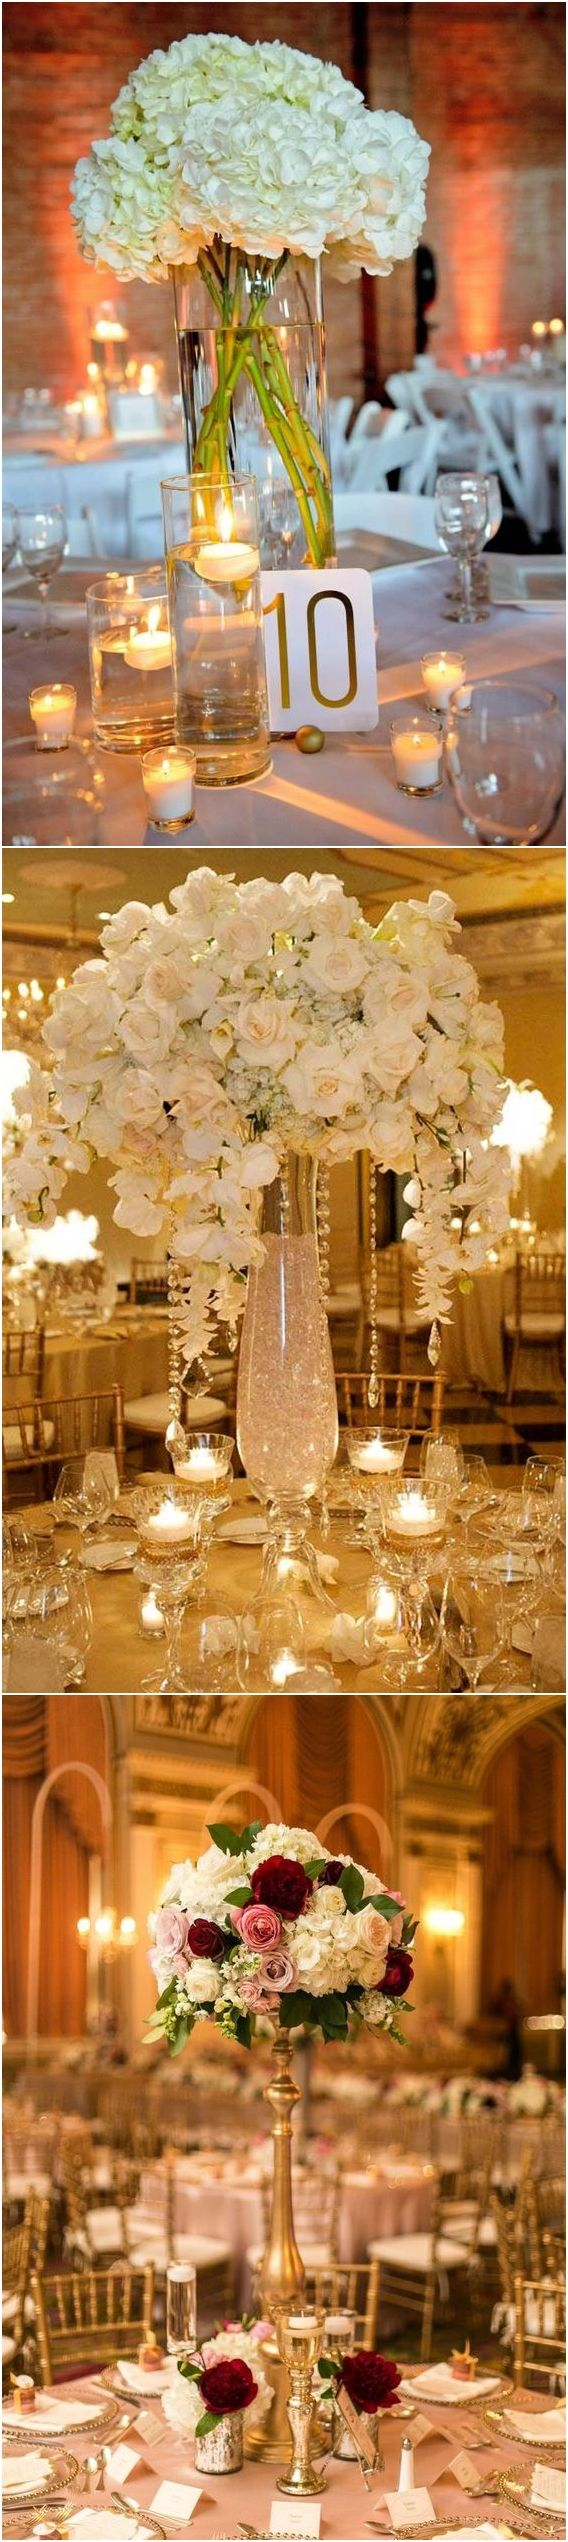 Tall wedding centerpieces with flowers #weddingcenterpieces #wedding #weddingflowers #weddingdecor http://www.deerpearlflowers.com/tall-wedding-centerpieces/